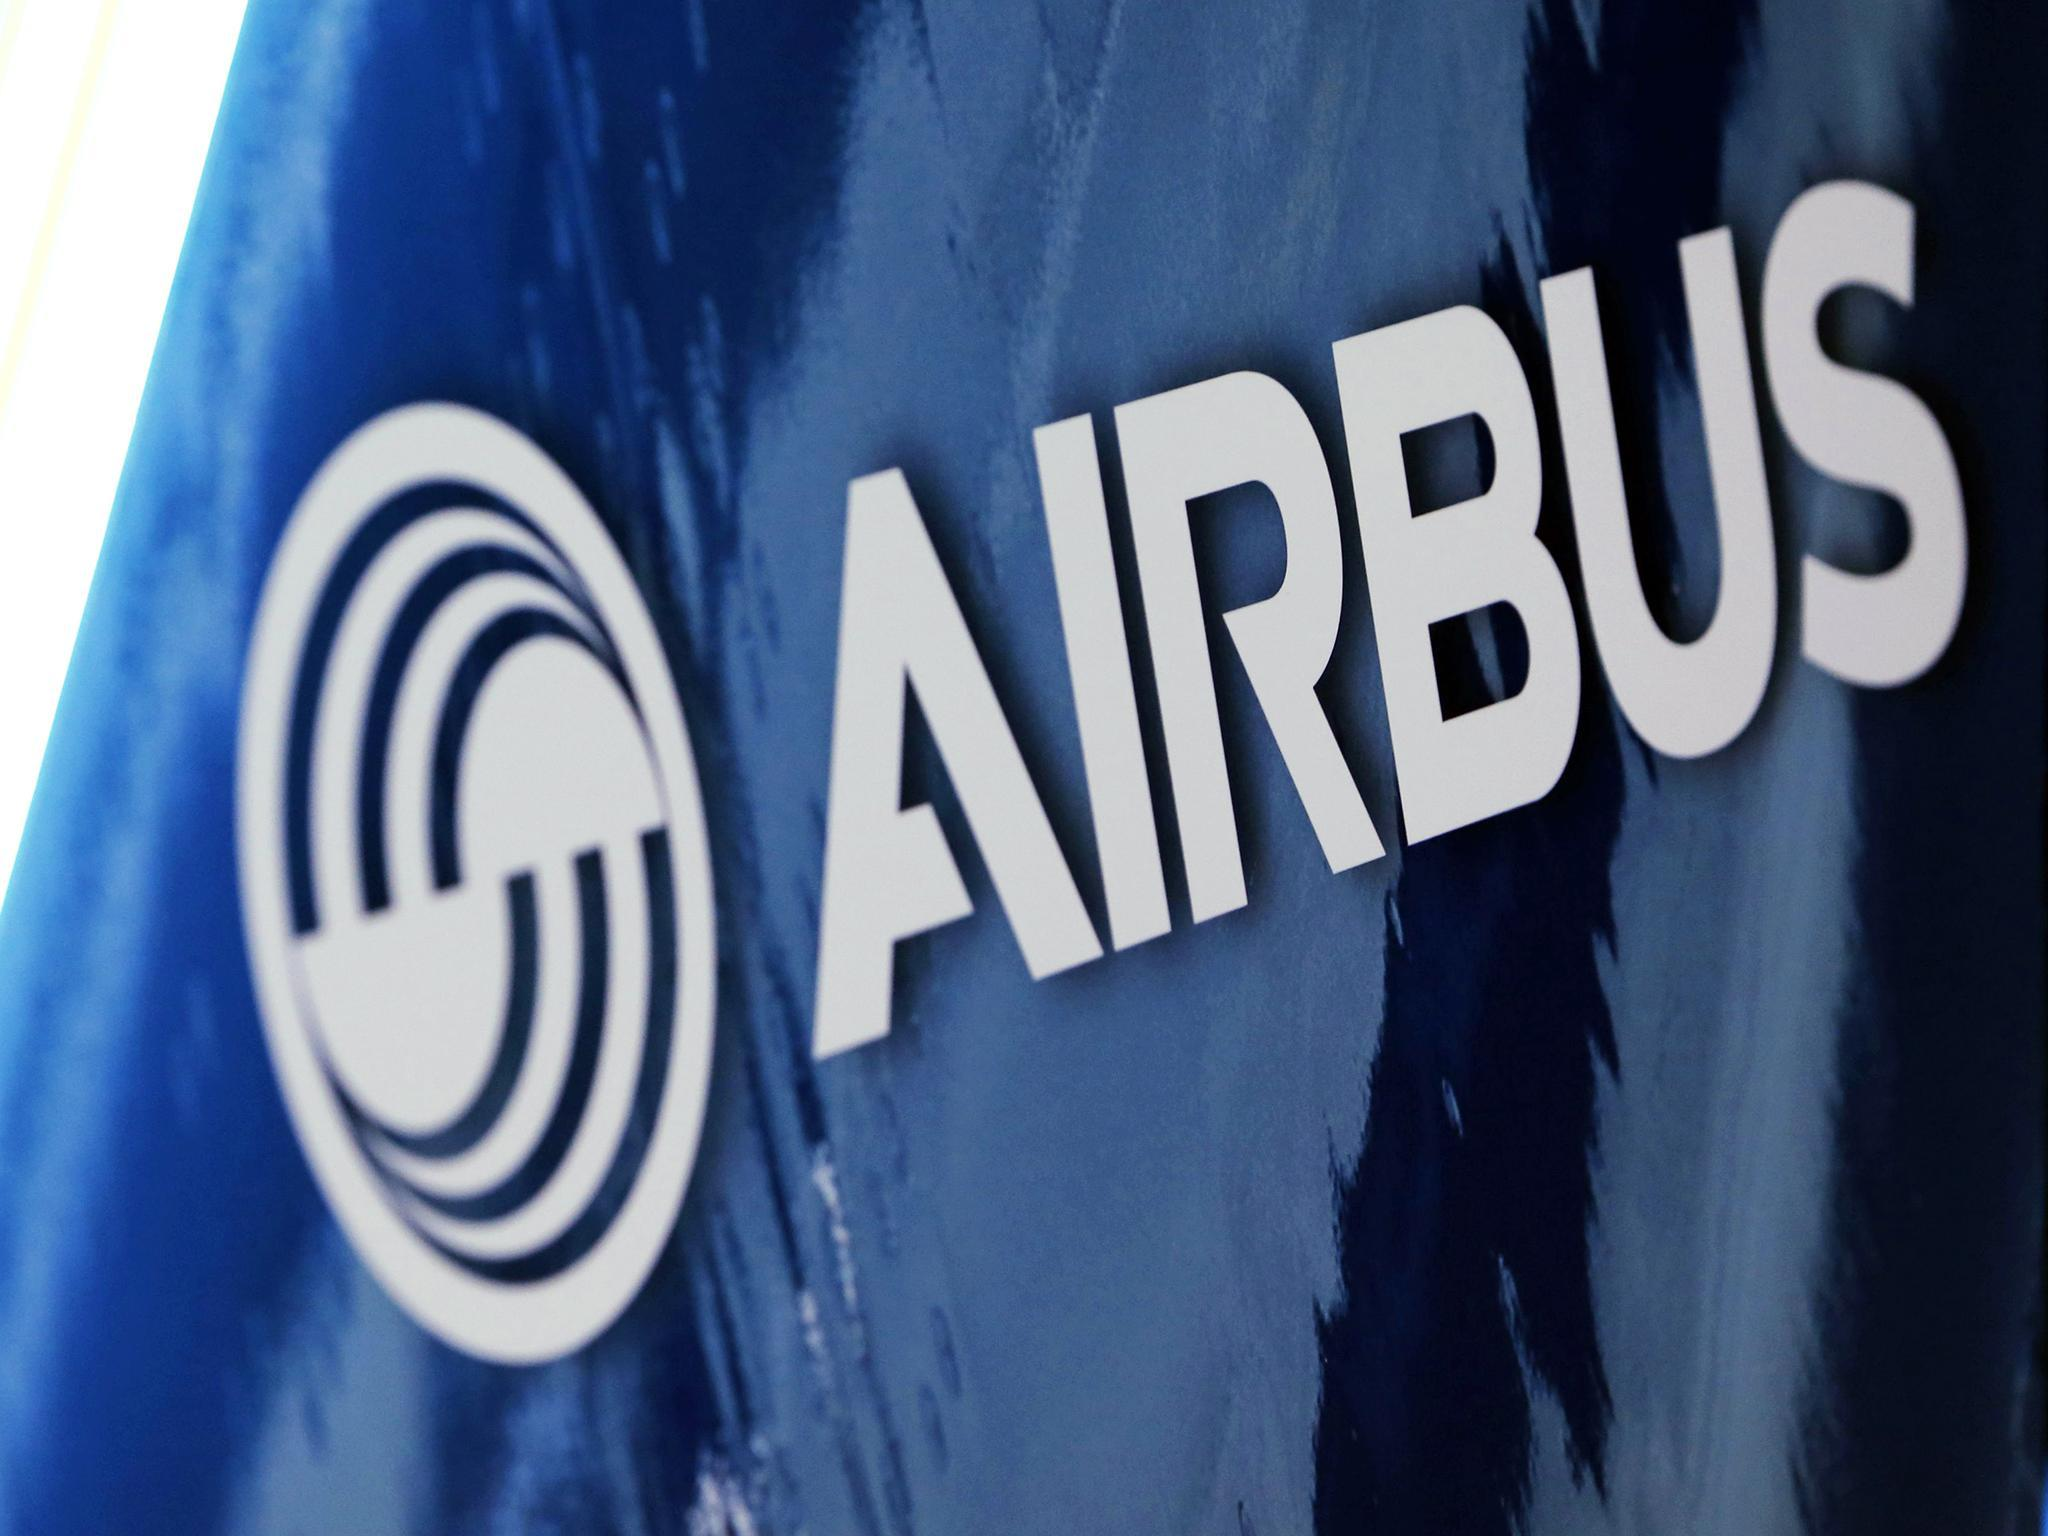 Co color in cars activity - Airbus Set To Test Flying Cars Before The End Of 2017